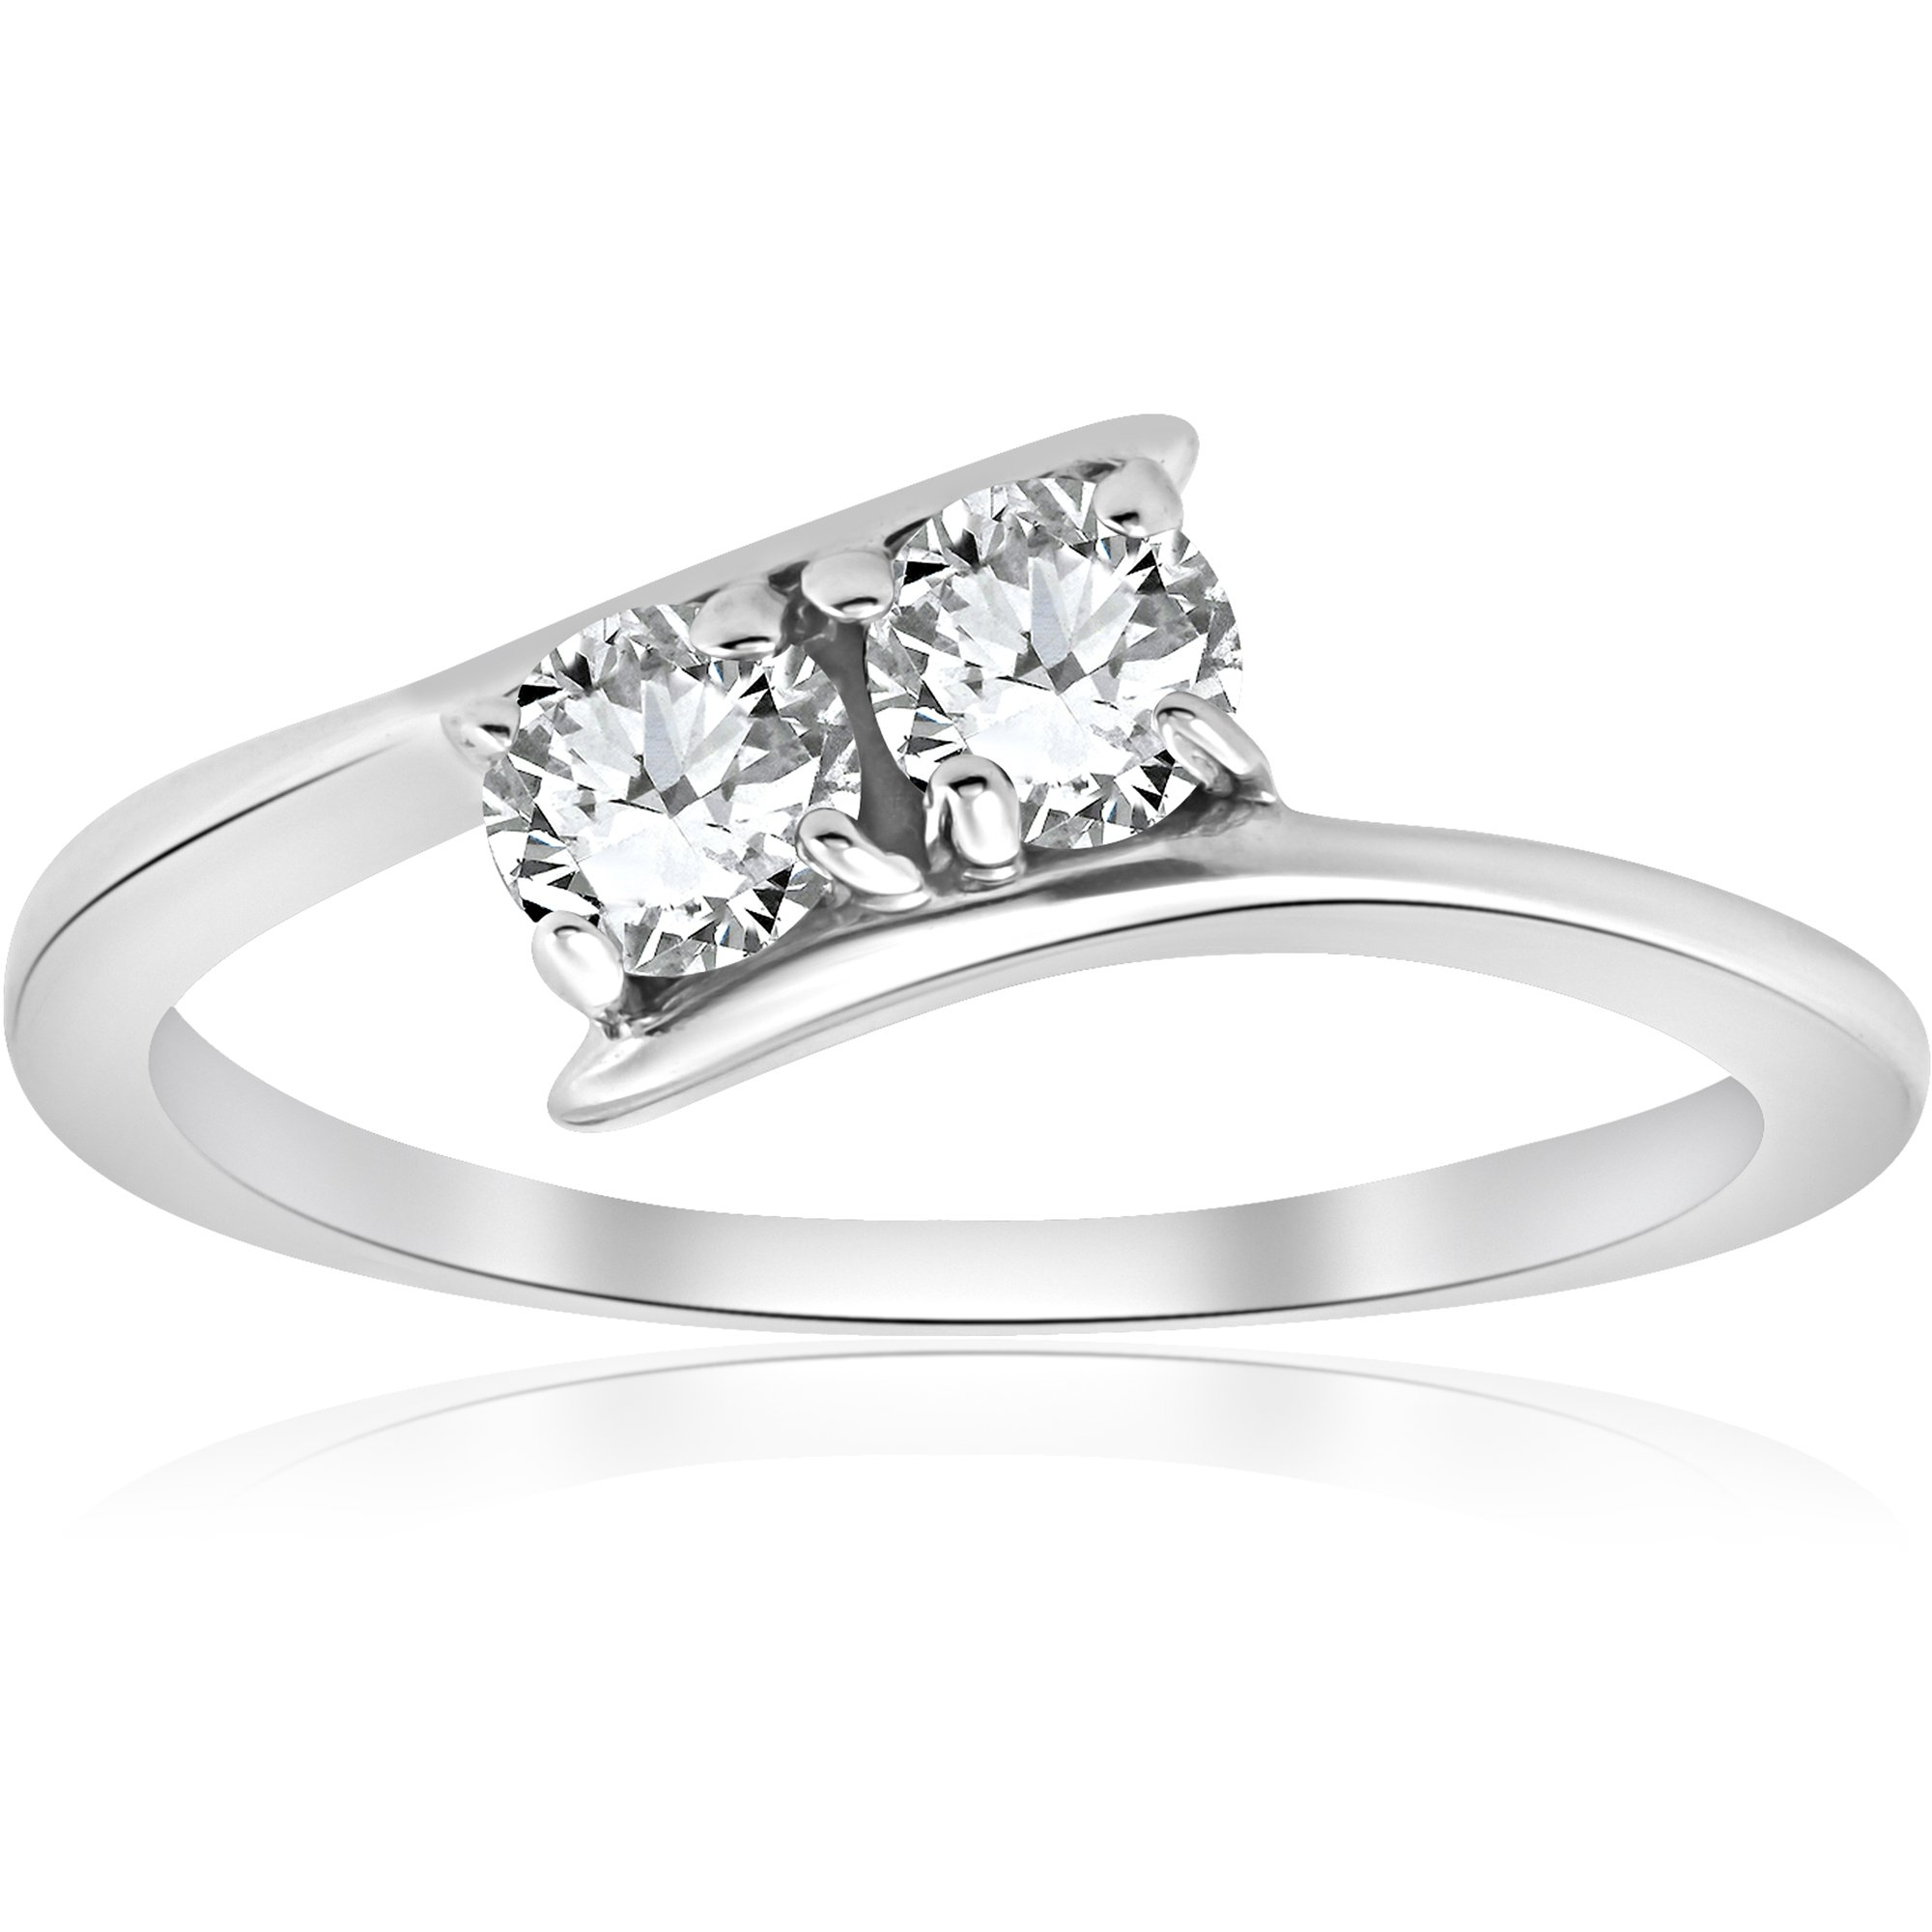 1/2 ct Two Stone Diamond Forever Us Engagement Ring 10k White Gold - Size 8